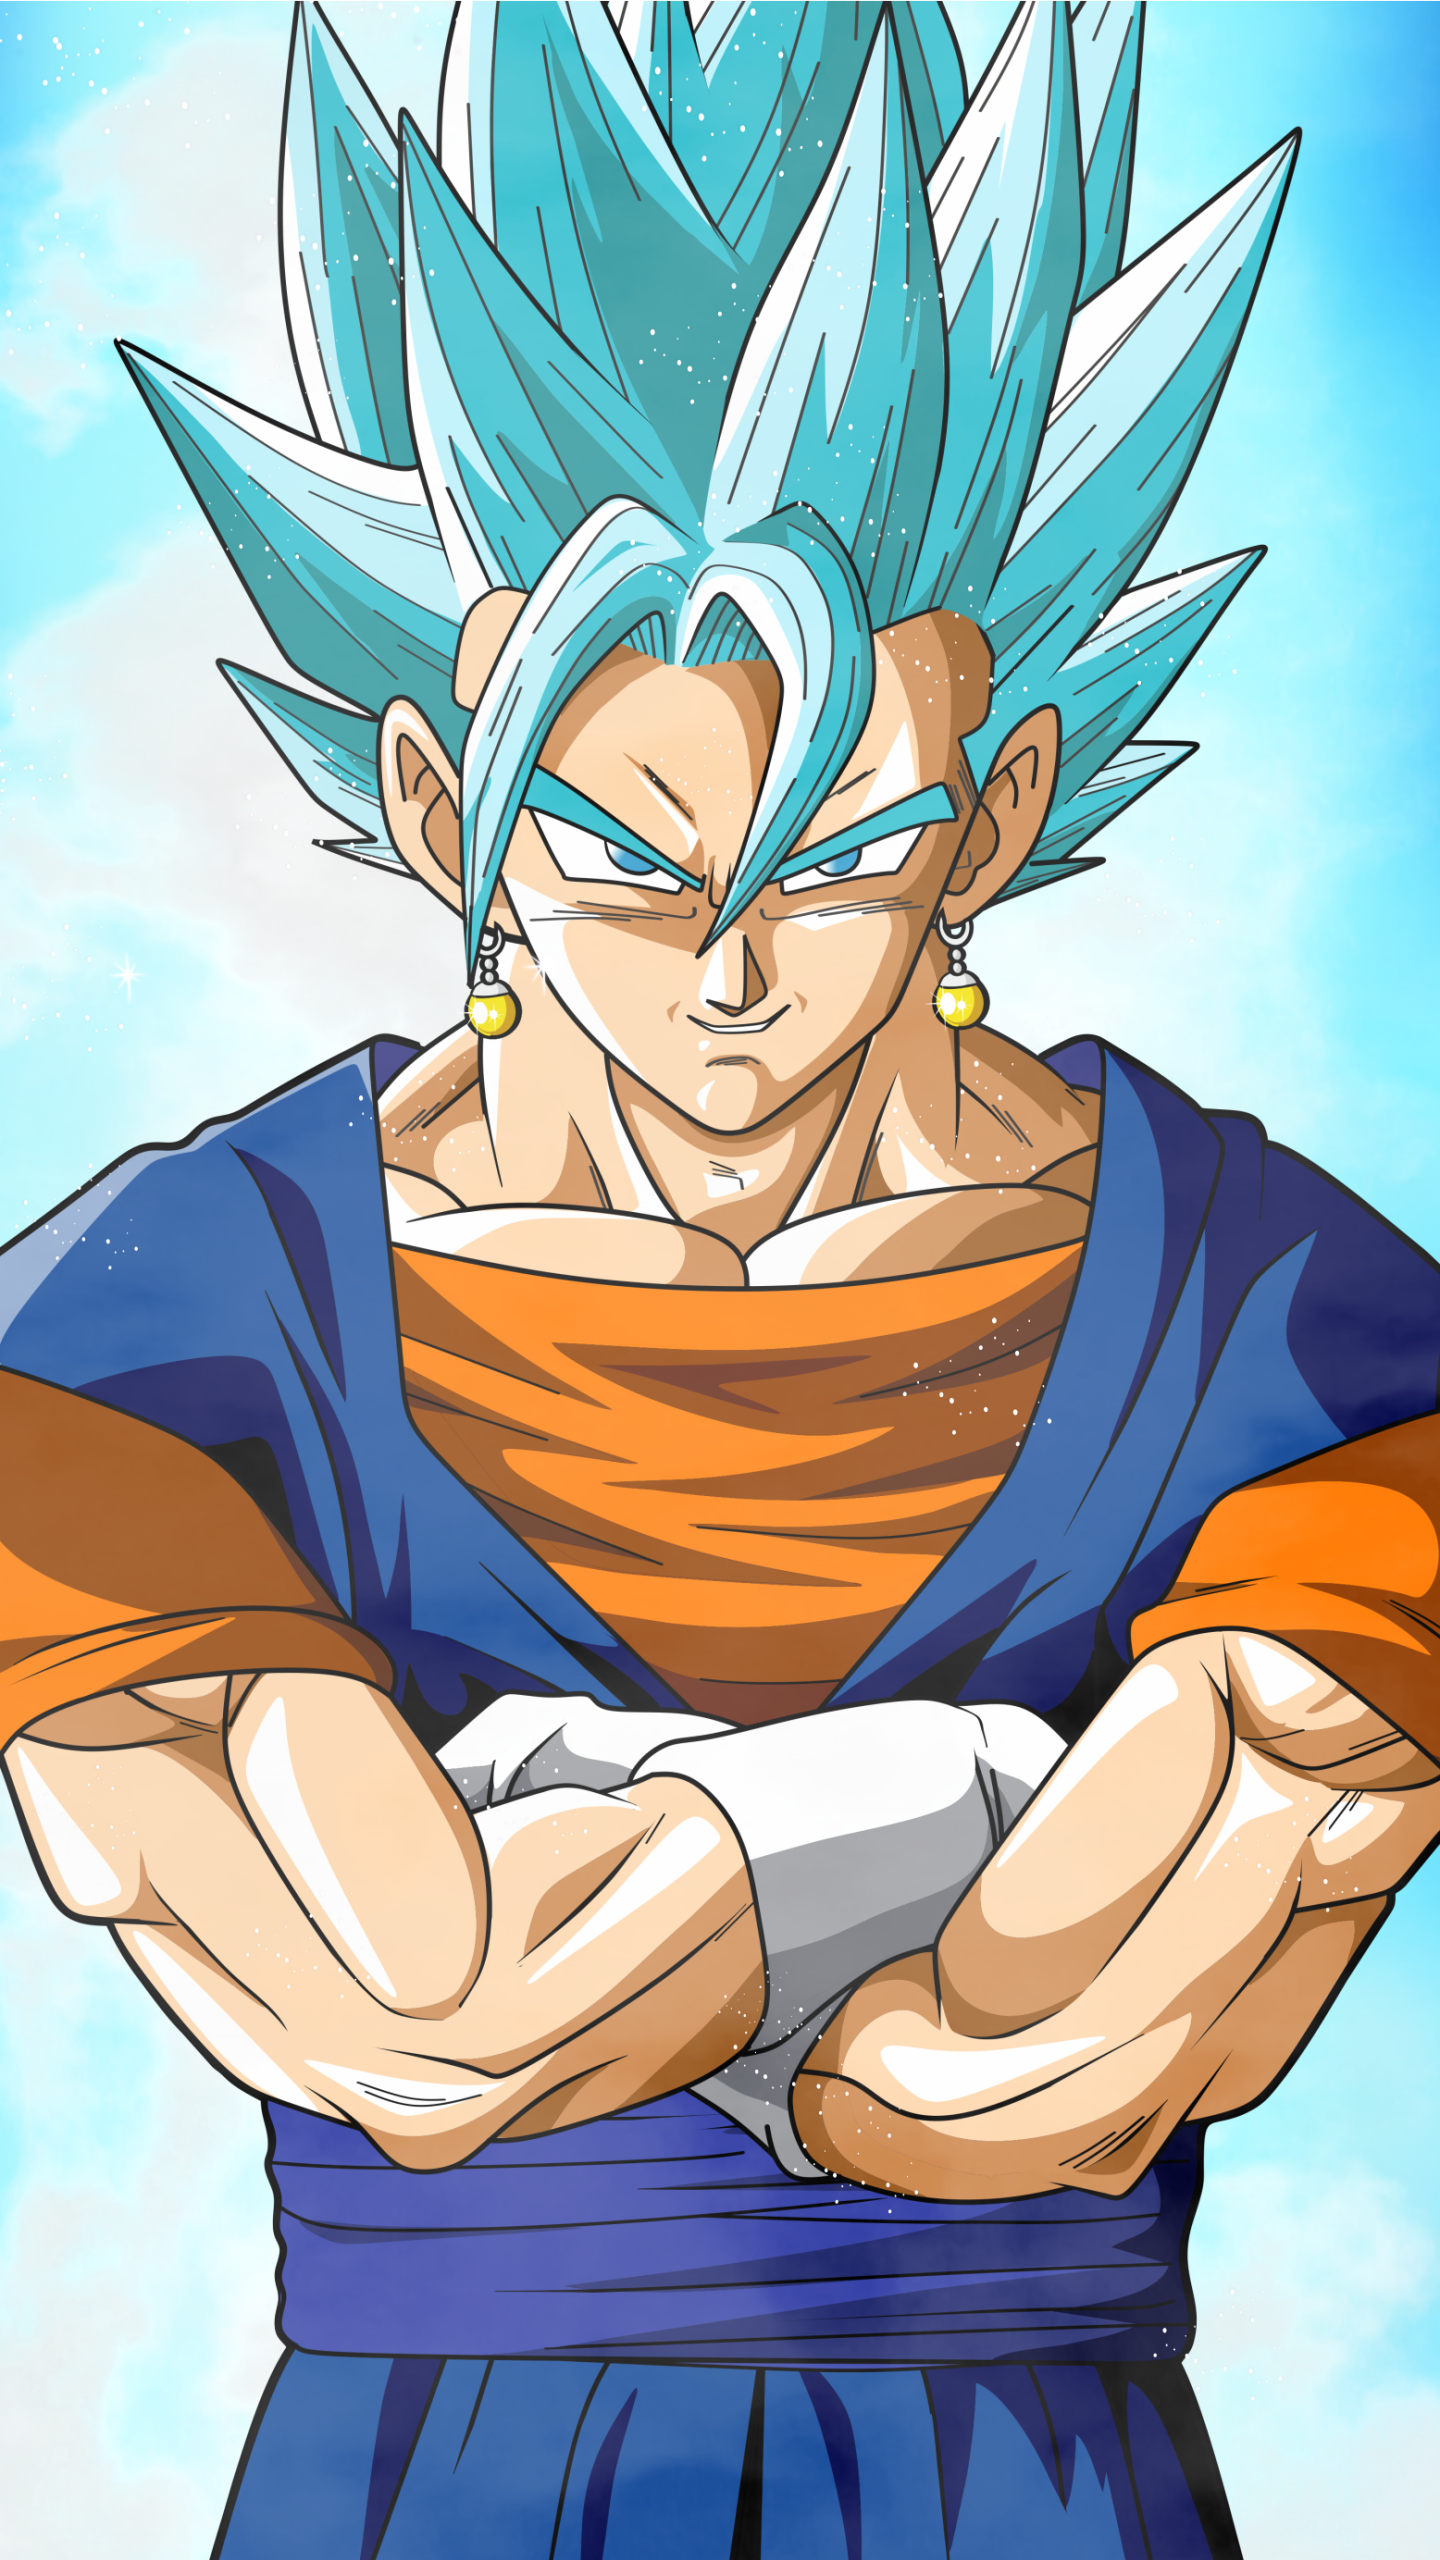 469 Dragon Ball Super Apple Iphone 7 Plus 1080x1920 Wallpapers